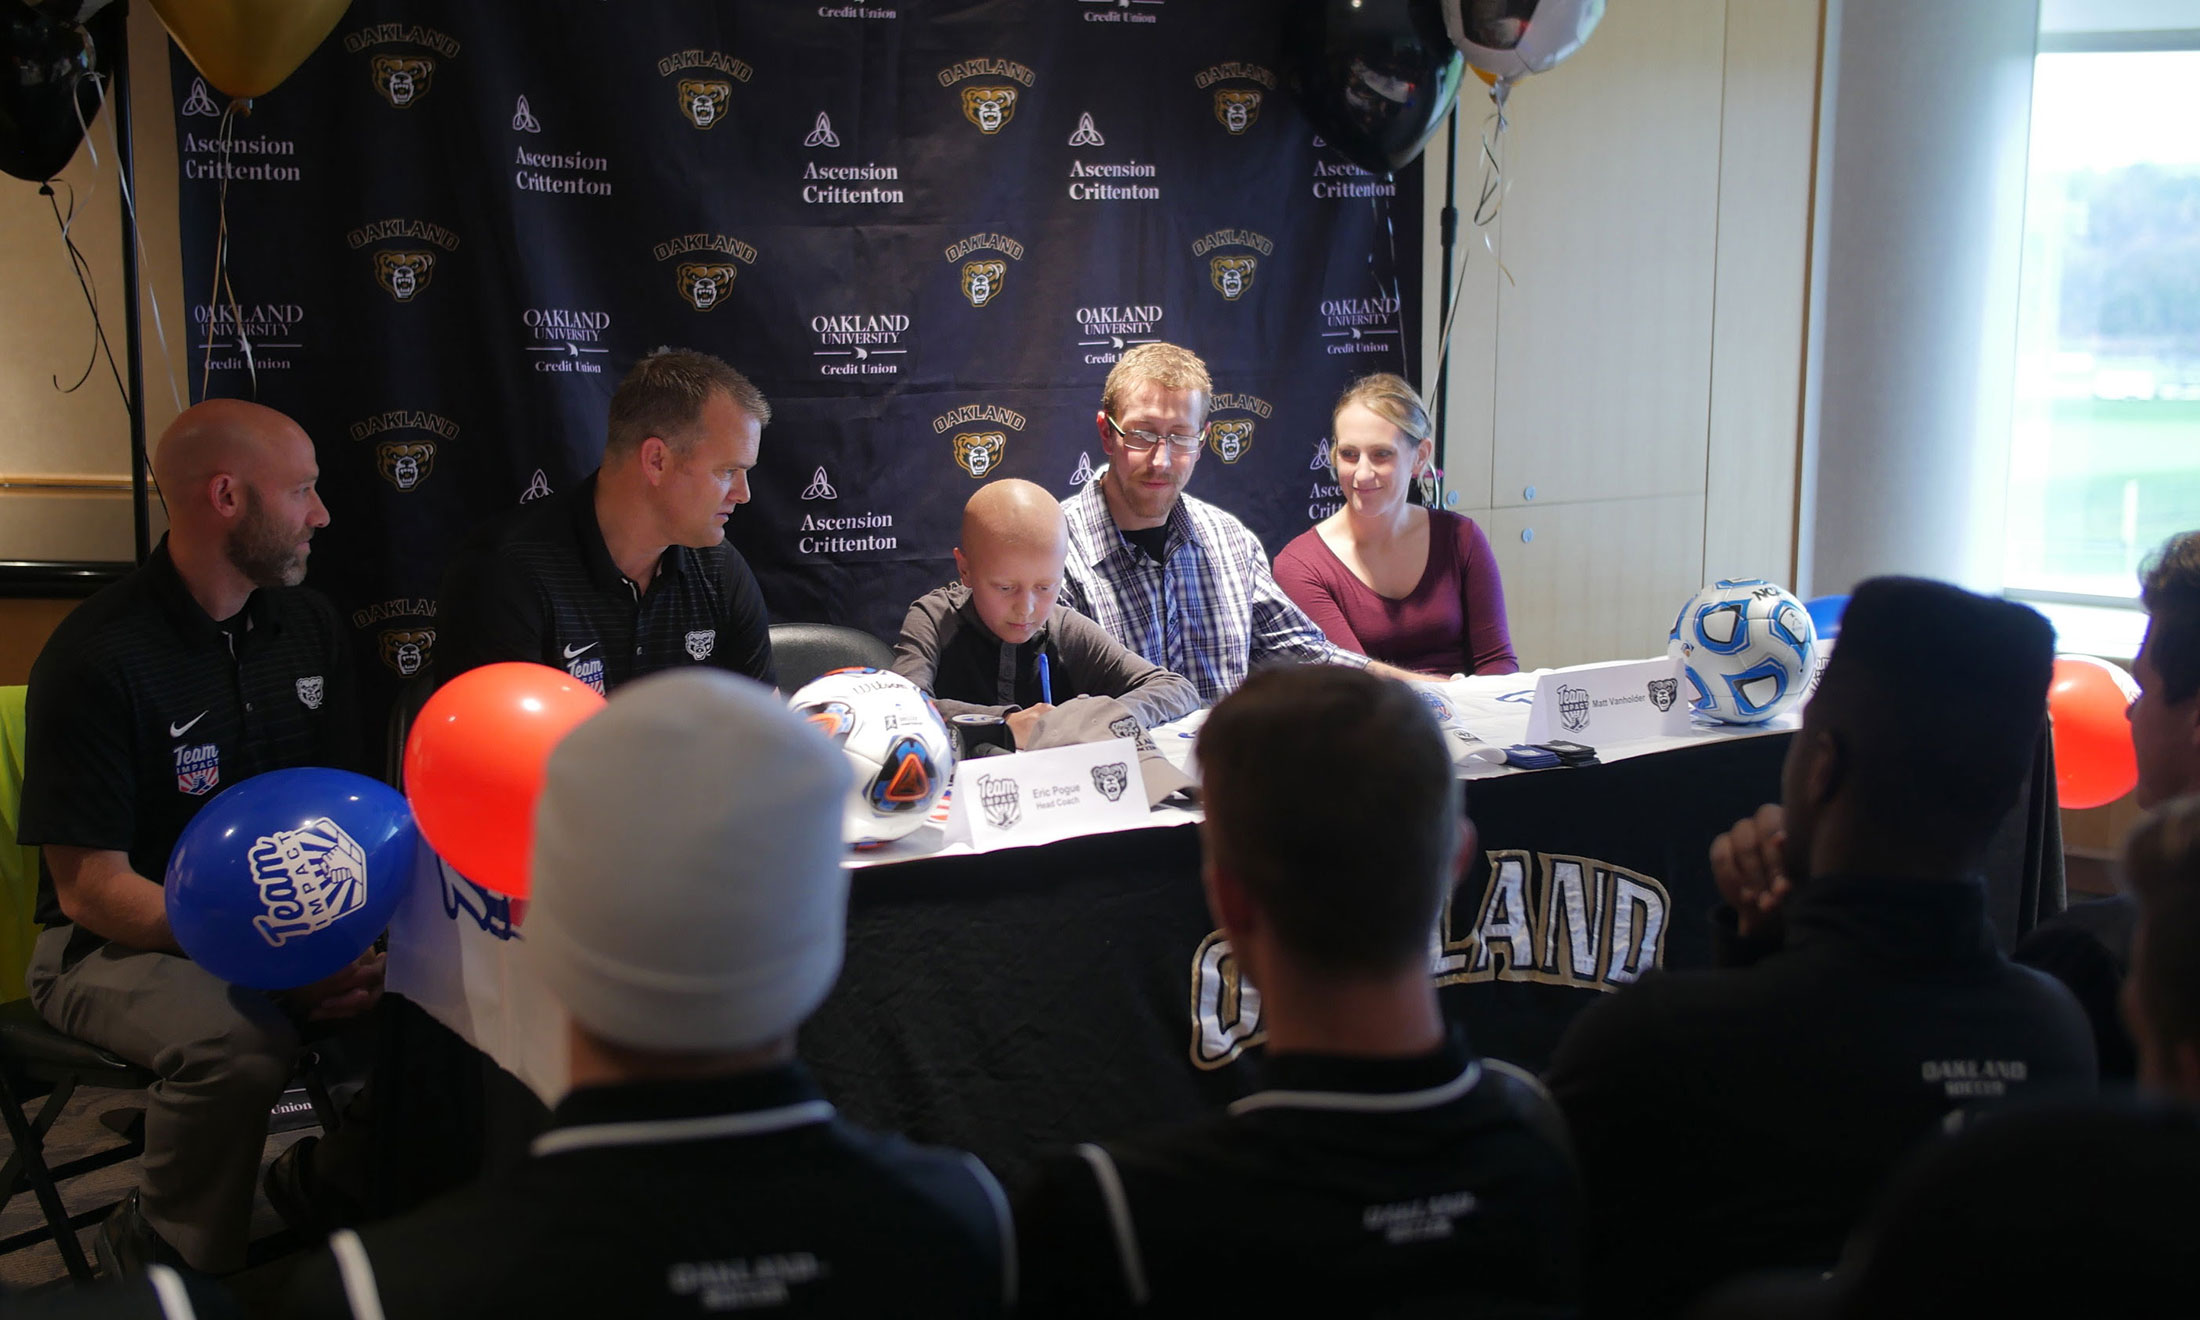 Alex VanHolder in the Oakland University Athletics Department's press room signing a letter of intent with the men's soccer team